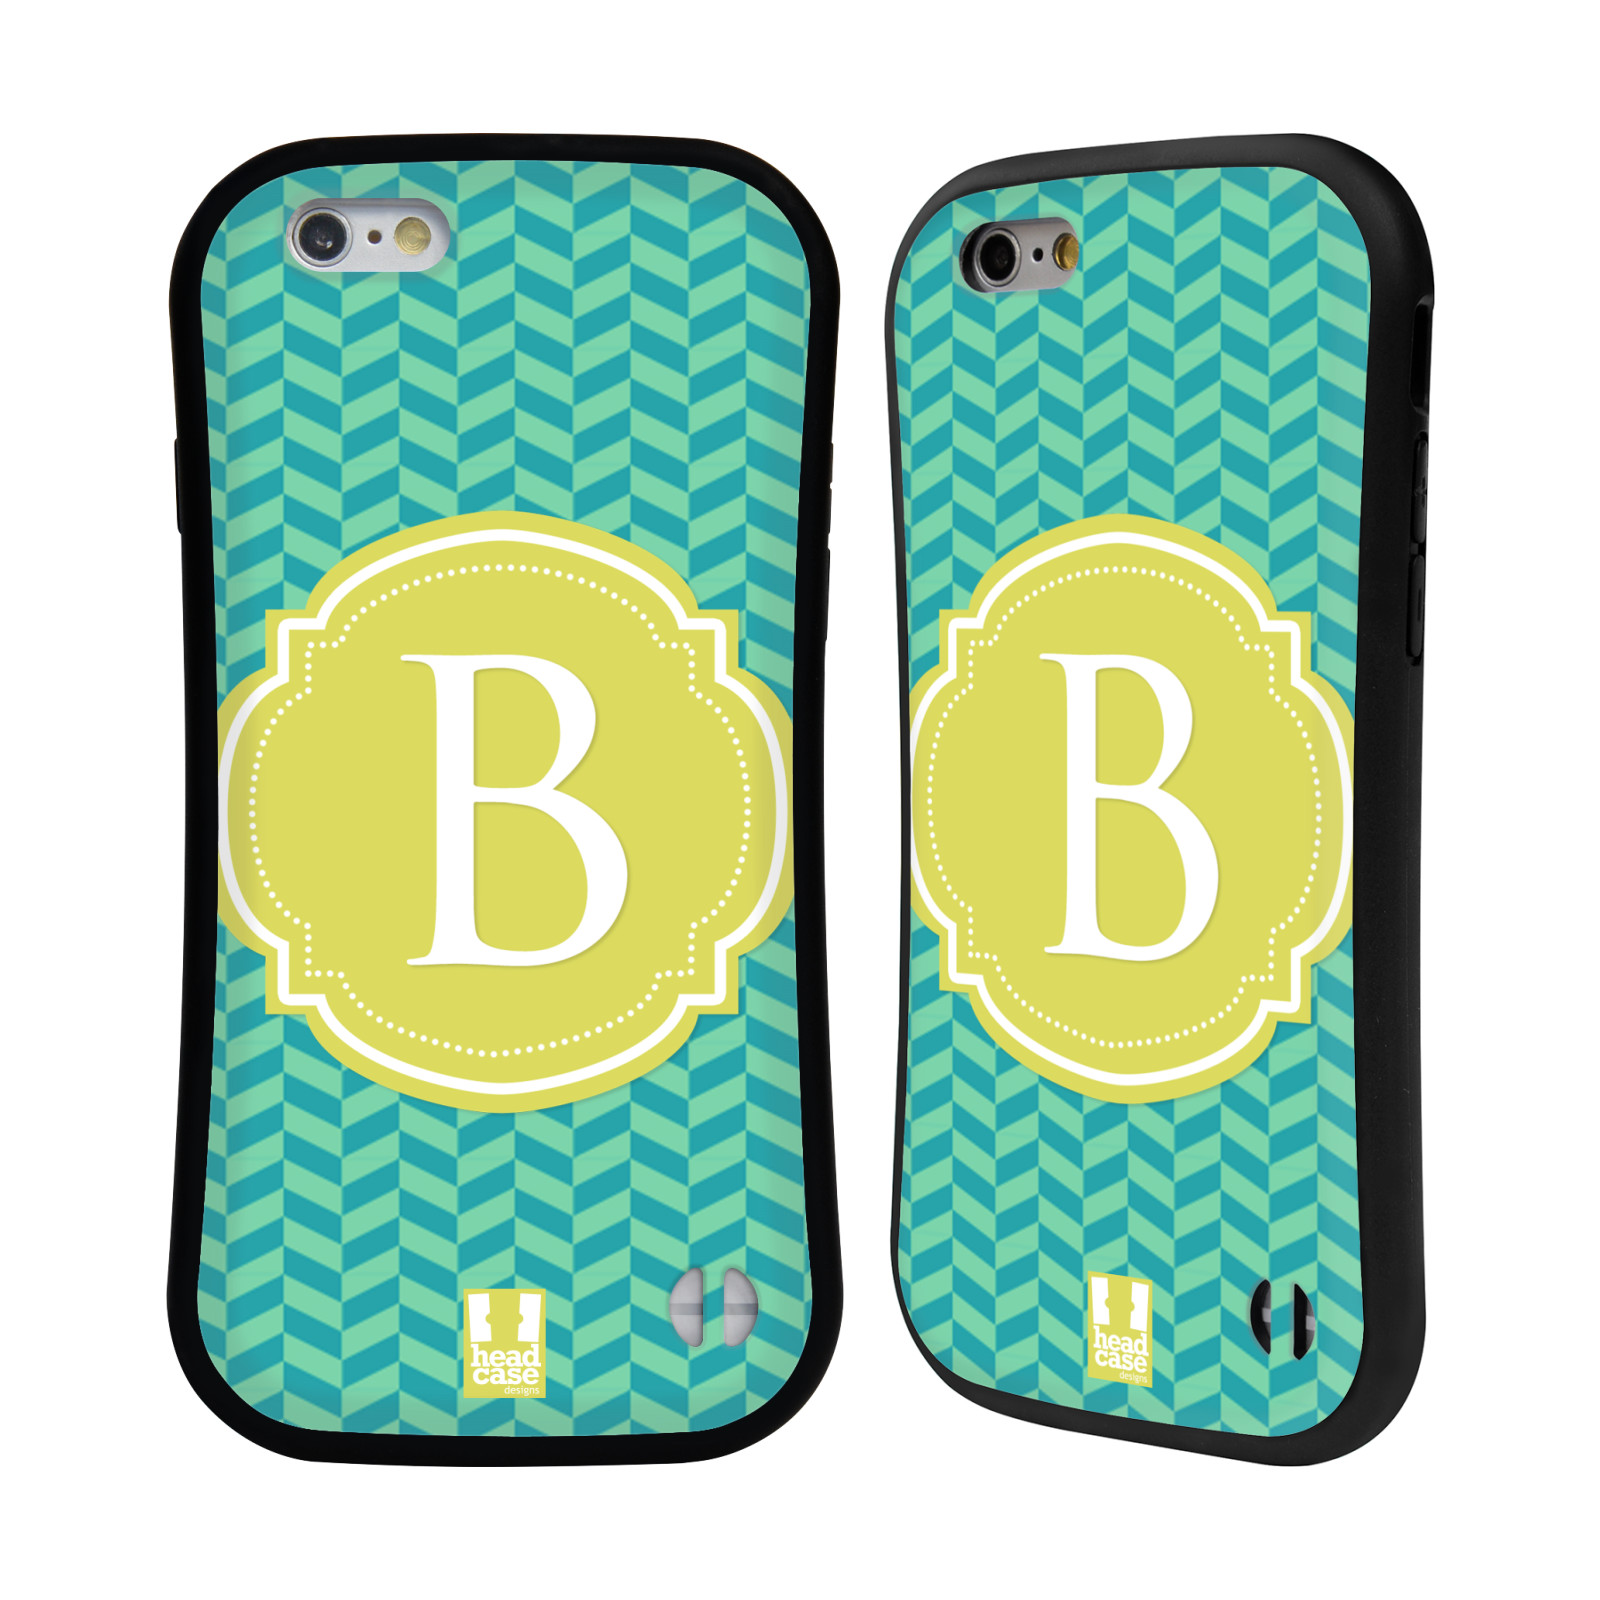 Head case designs letter cases hybrid case for apple for Cell phone cover design ideas